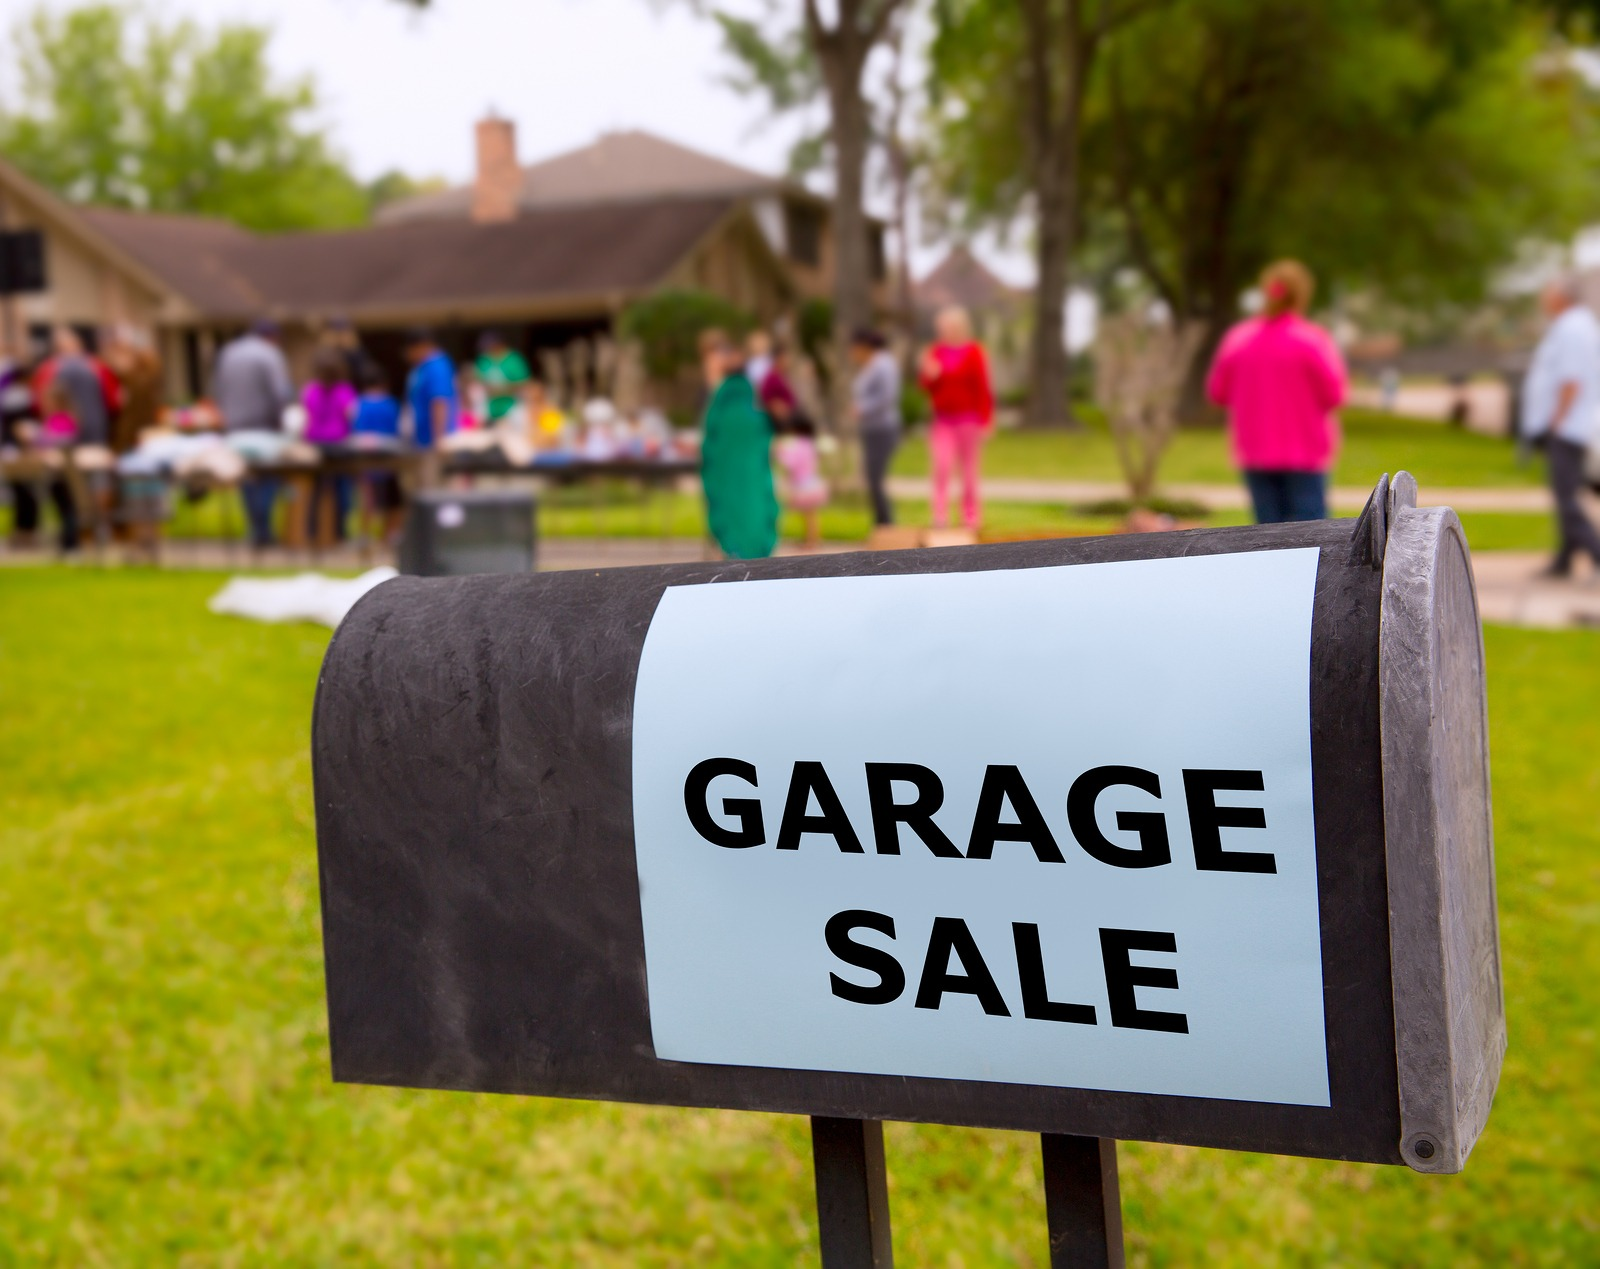 Garage Sale Tips How To Have A Garage Sale That Makes Money Make Your Own Beautiful  HD Wallpapers, Images Over 1000+ [ralydesign.ml]